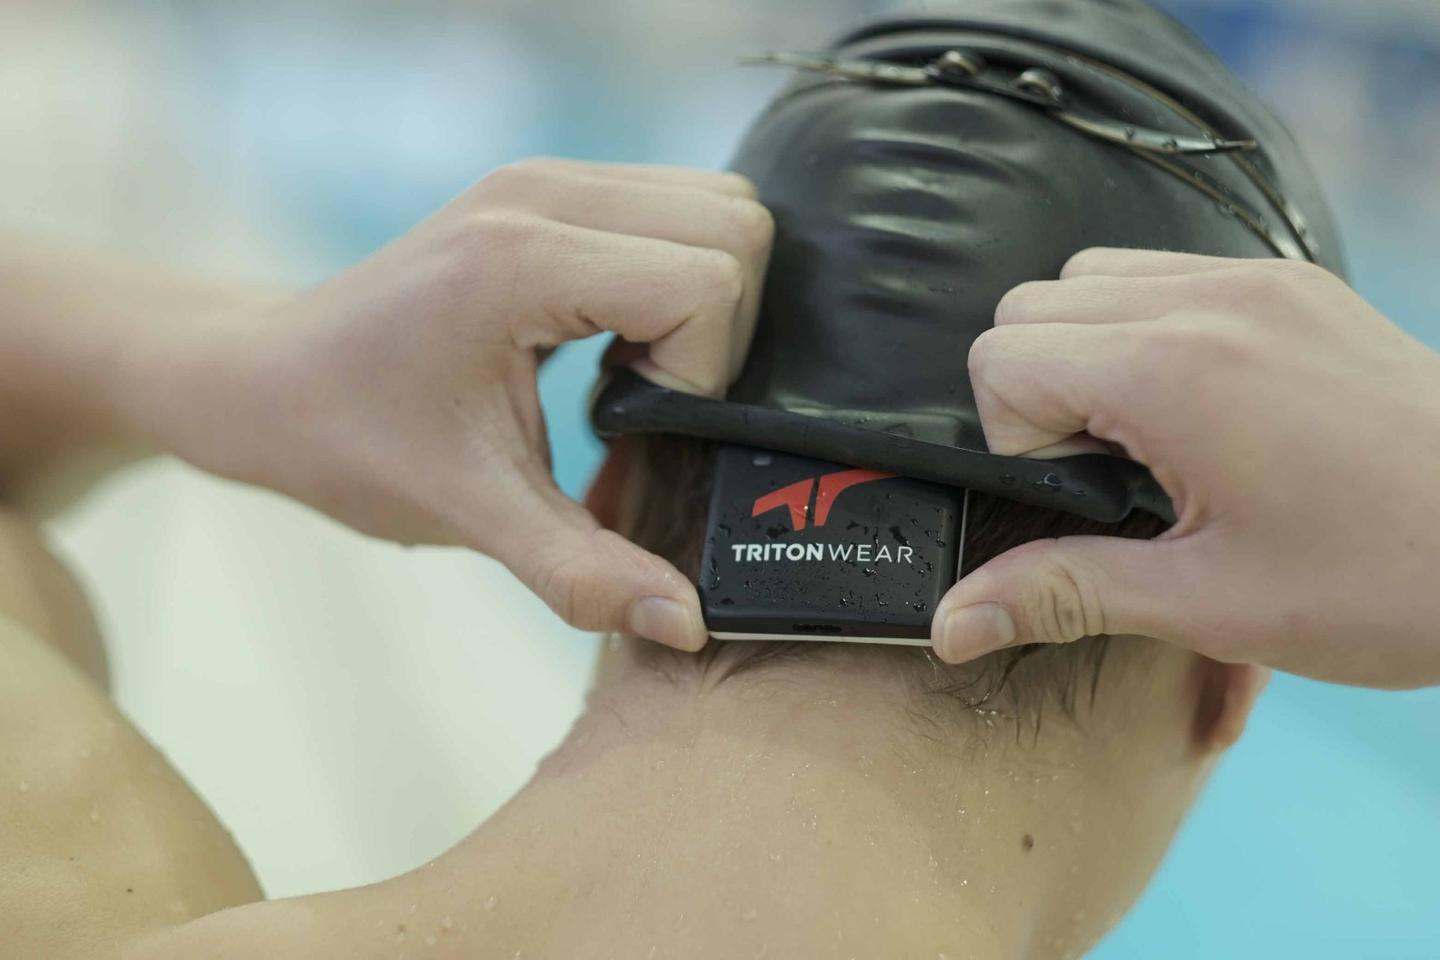 The Triton 2 is placed beneath the swimmer's cap, and transmits data to a coach's mobile device